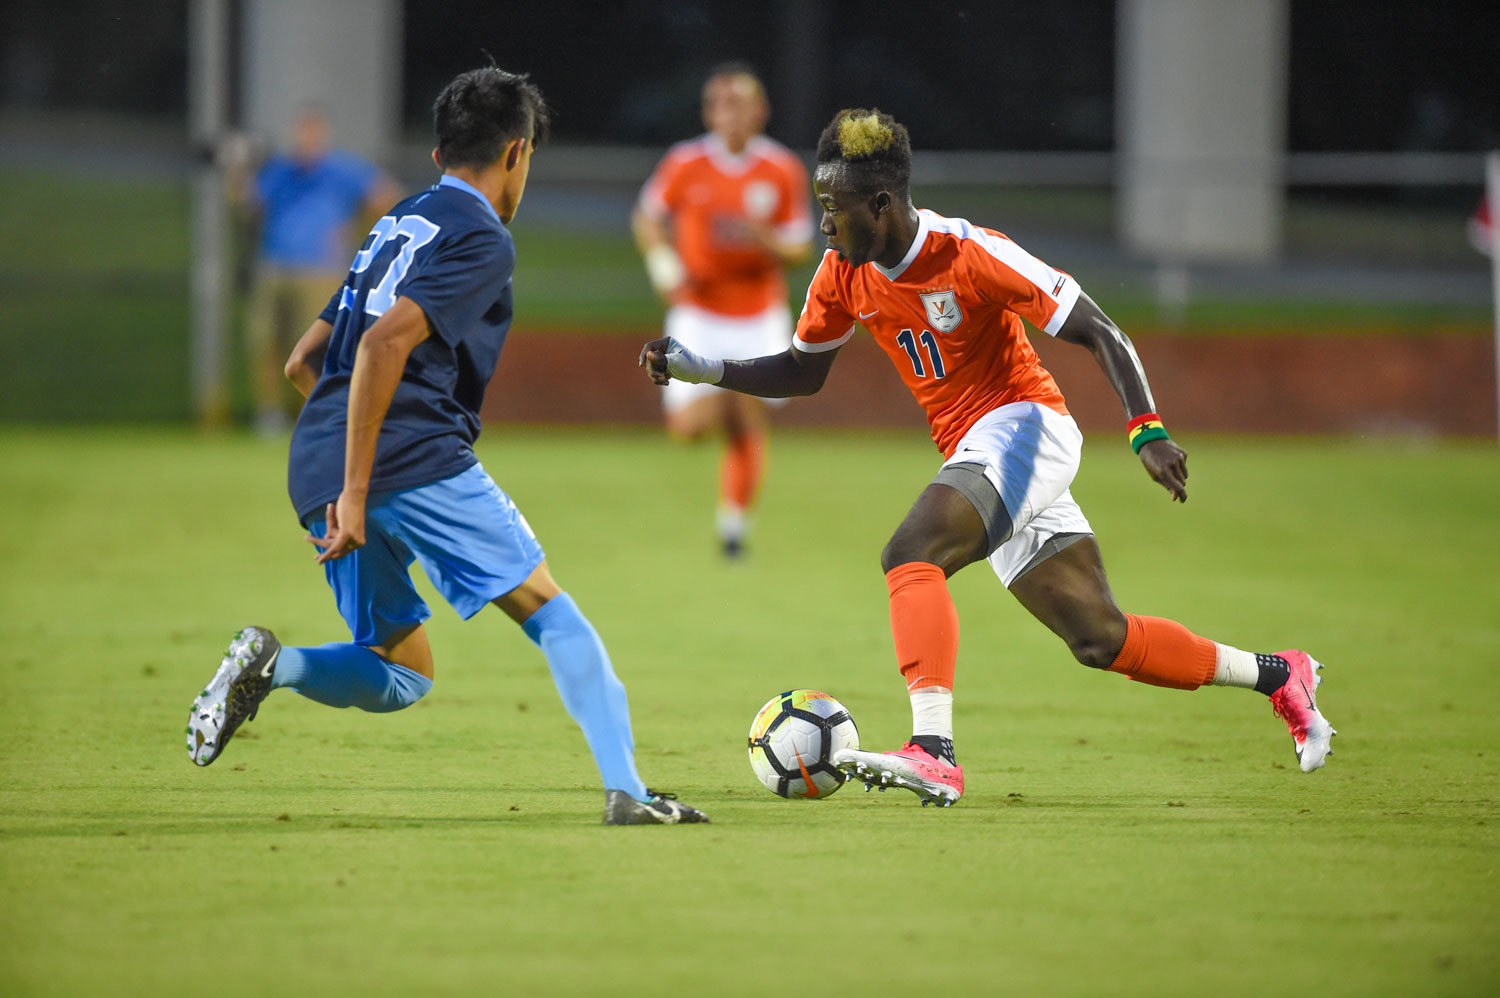 Maturing into a more team-oriented role, Opoku leads the Cavaliers with seven goals and three assists through the team's first 13 matches.